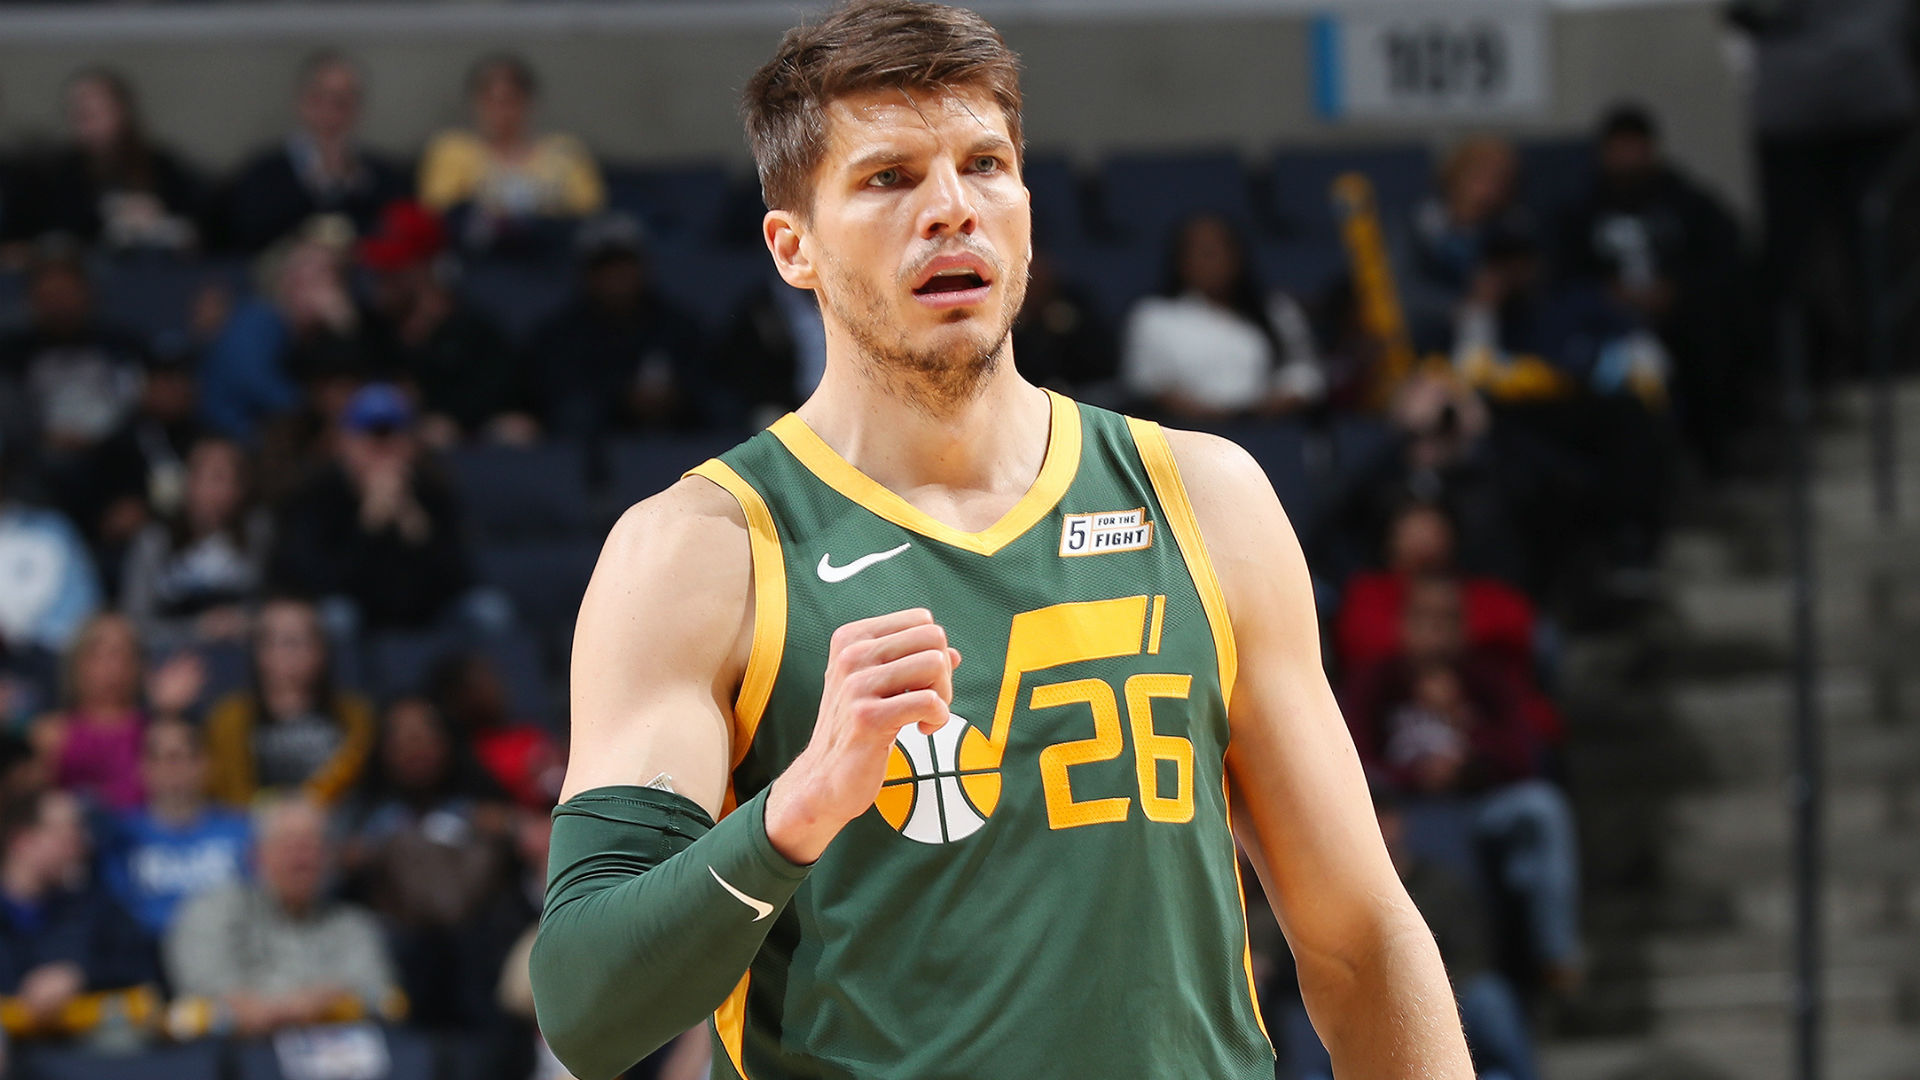 Report: Kyle Korver has agreed to a one-year deal with the Milwaukee Bucks